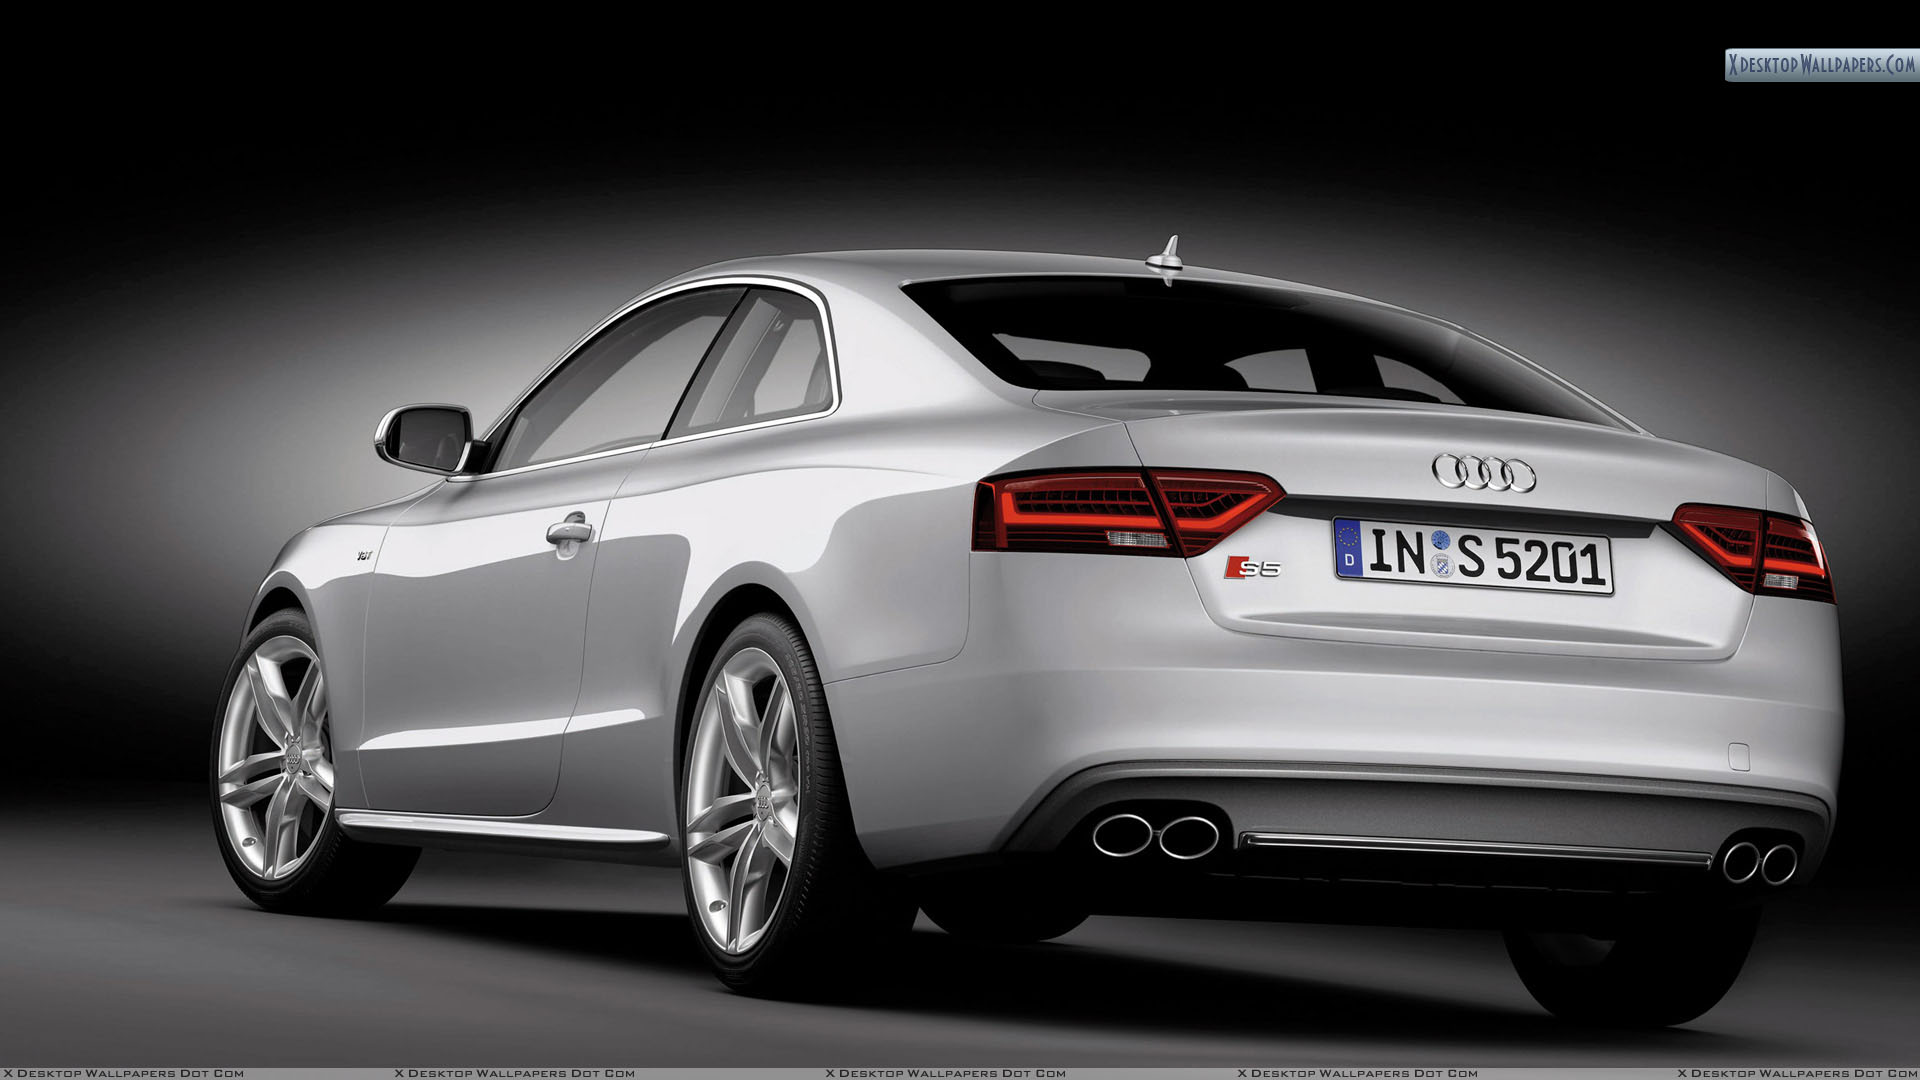 White Audi S5 Wallpaper 5920 Hd Wallpapers in Cars   Imagescicom 1920x1080